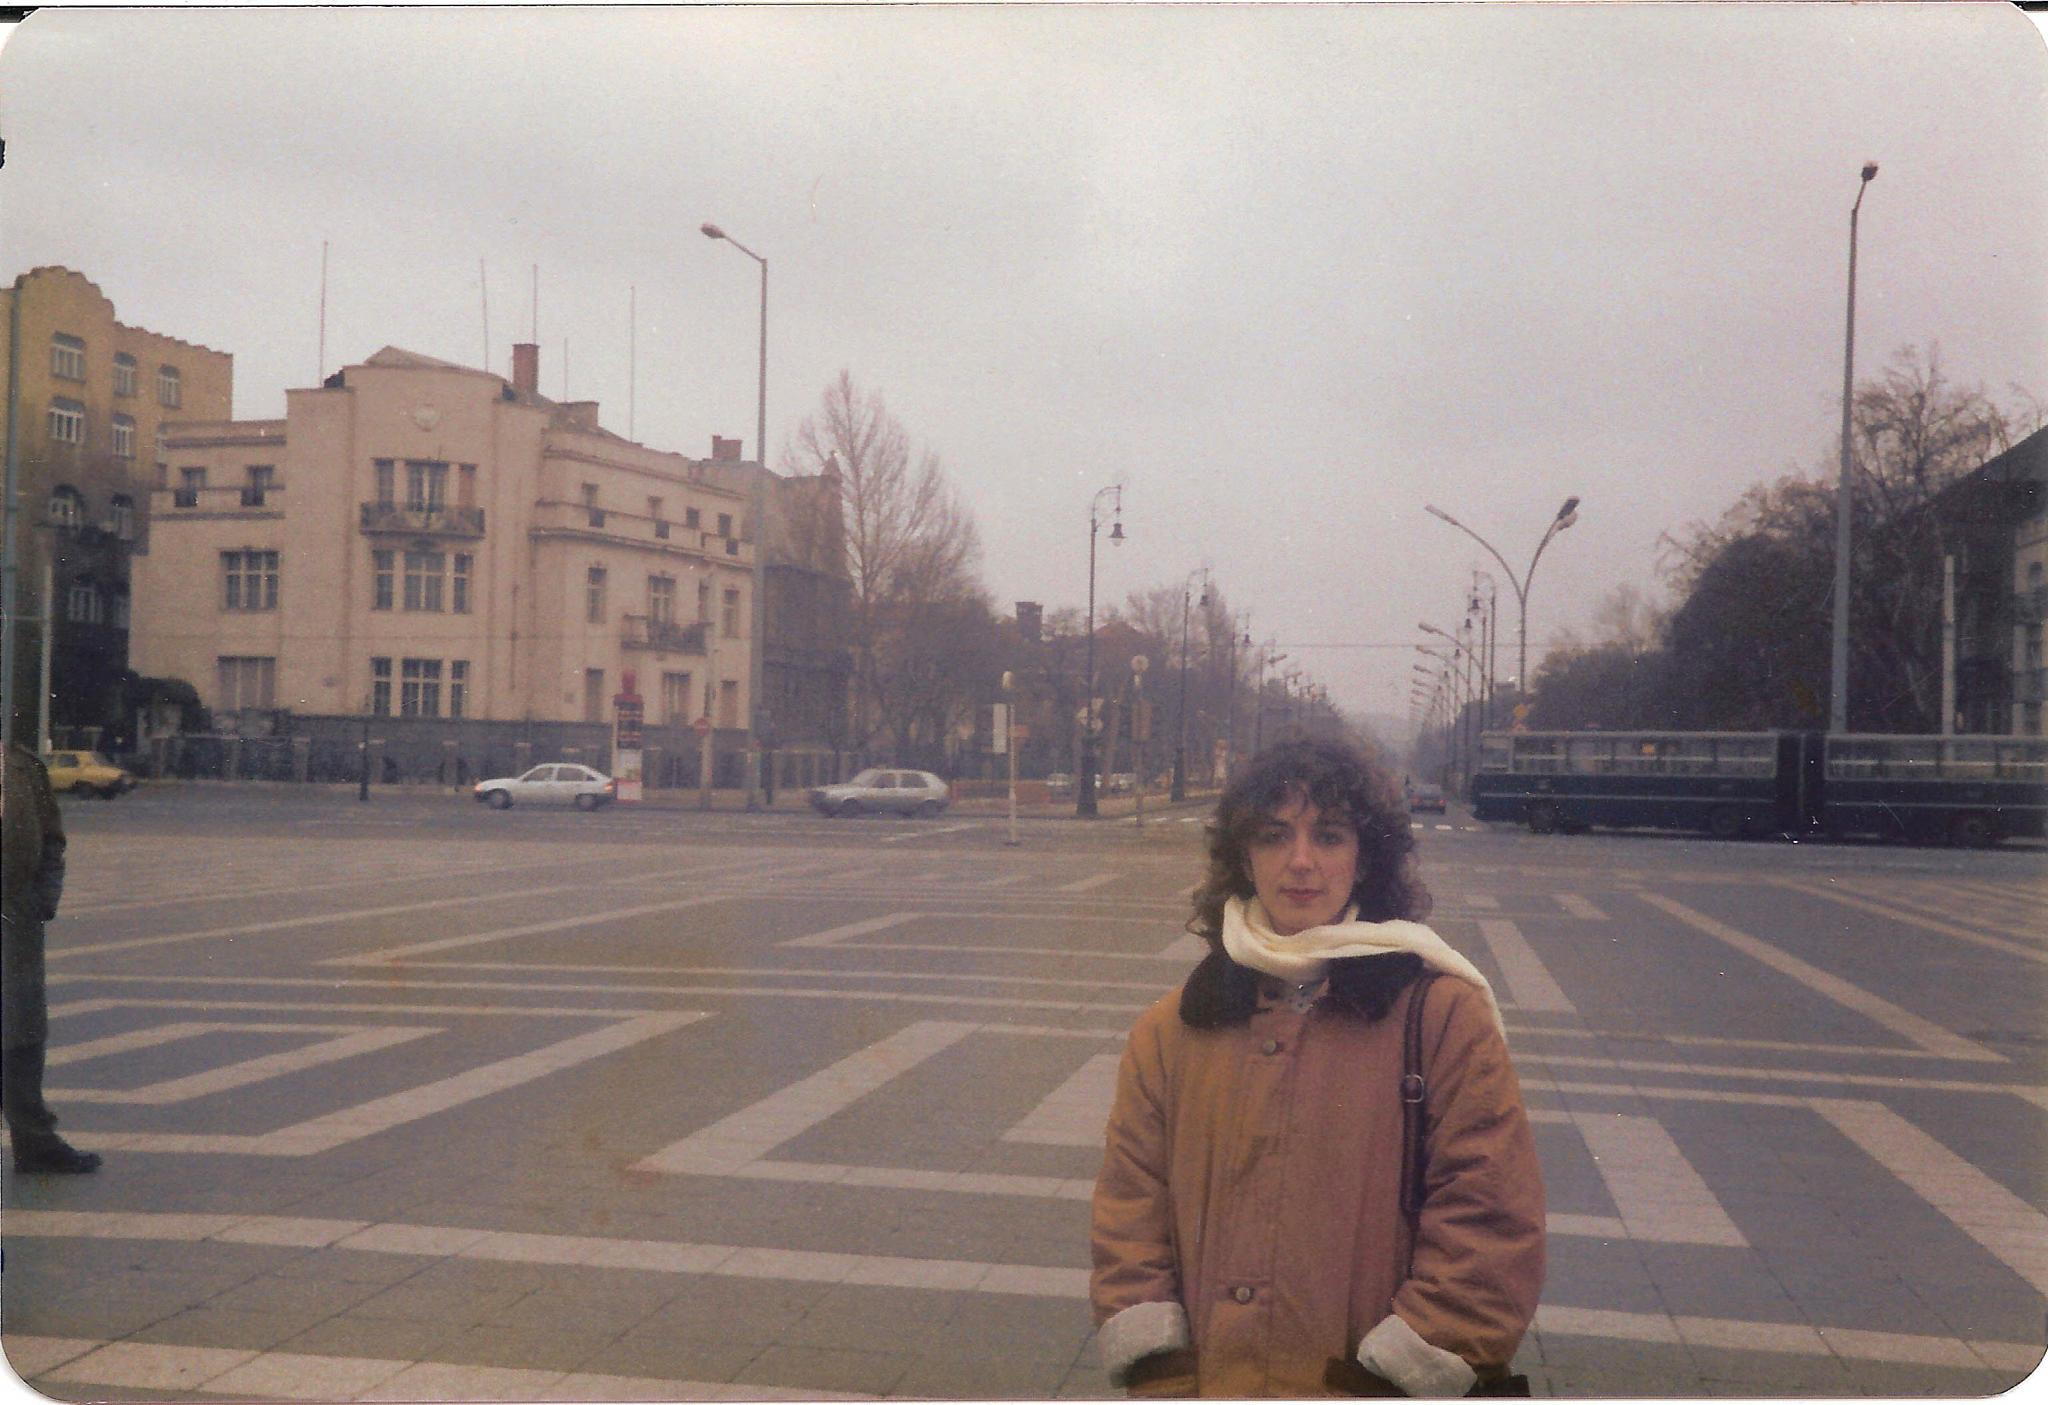 Budapest December 1989 by yiannis.lazaris